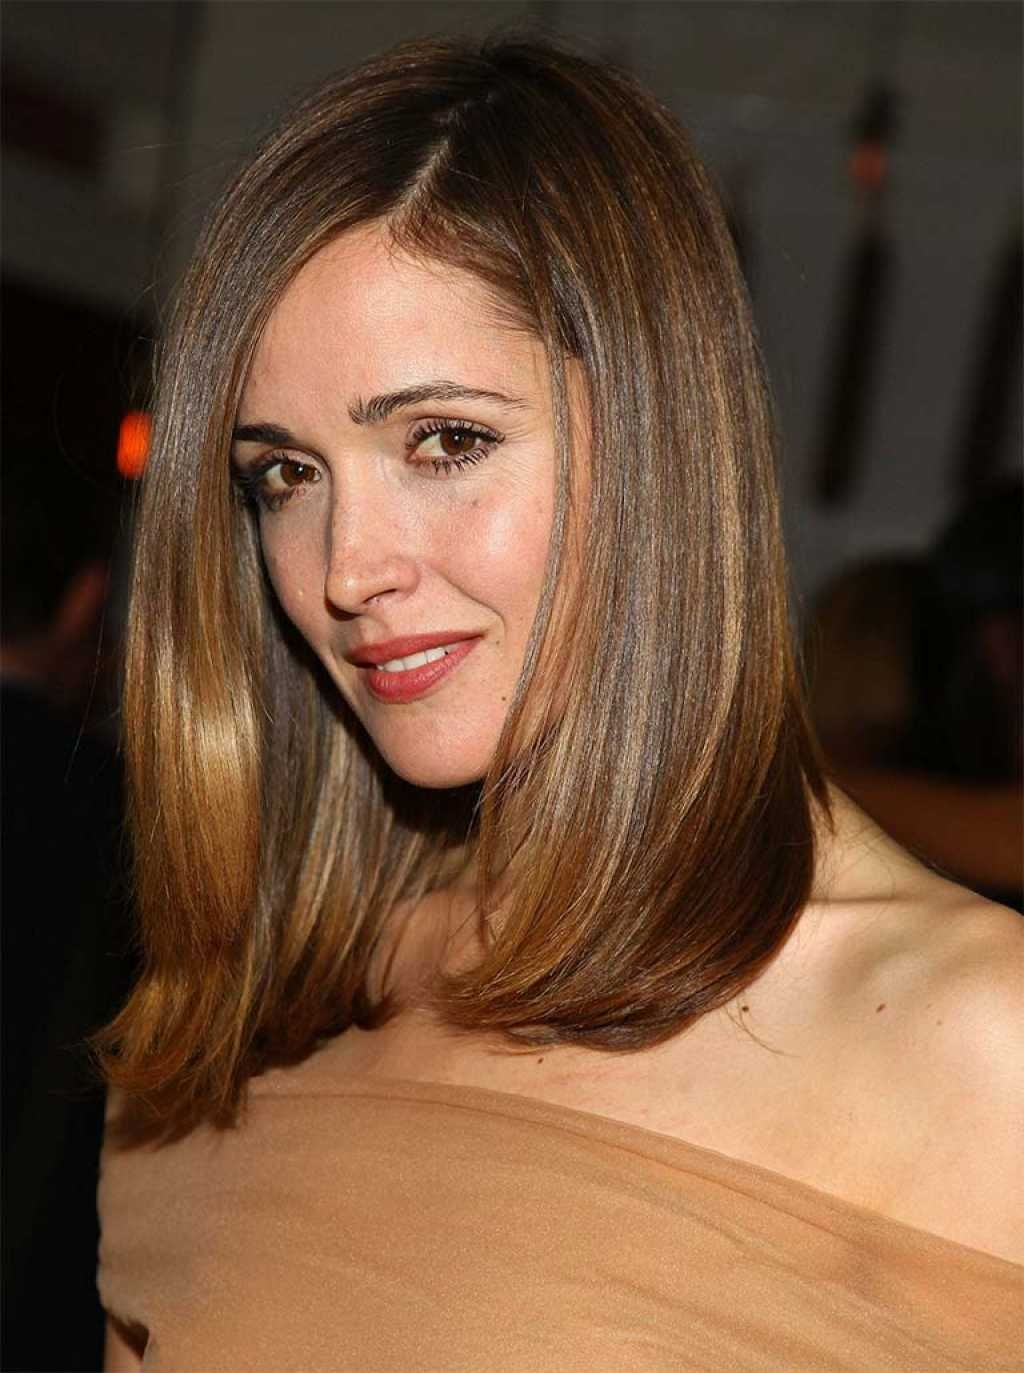 Cappuccino hair color - is it simple? 23